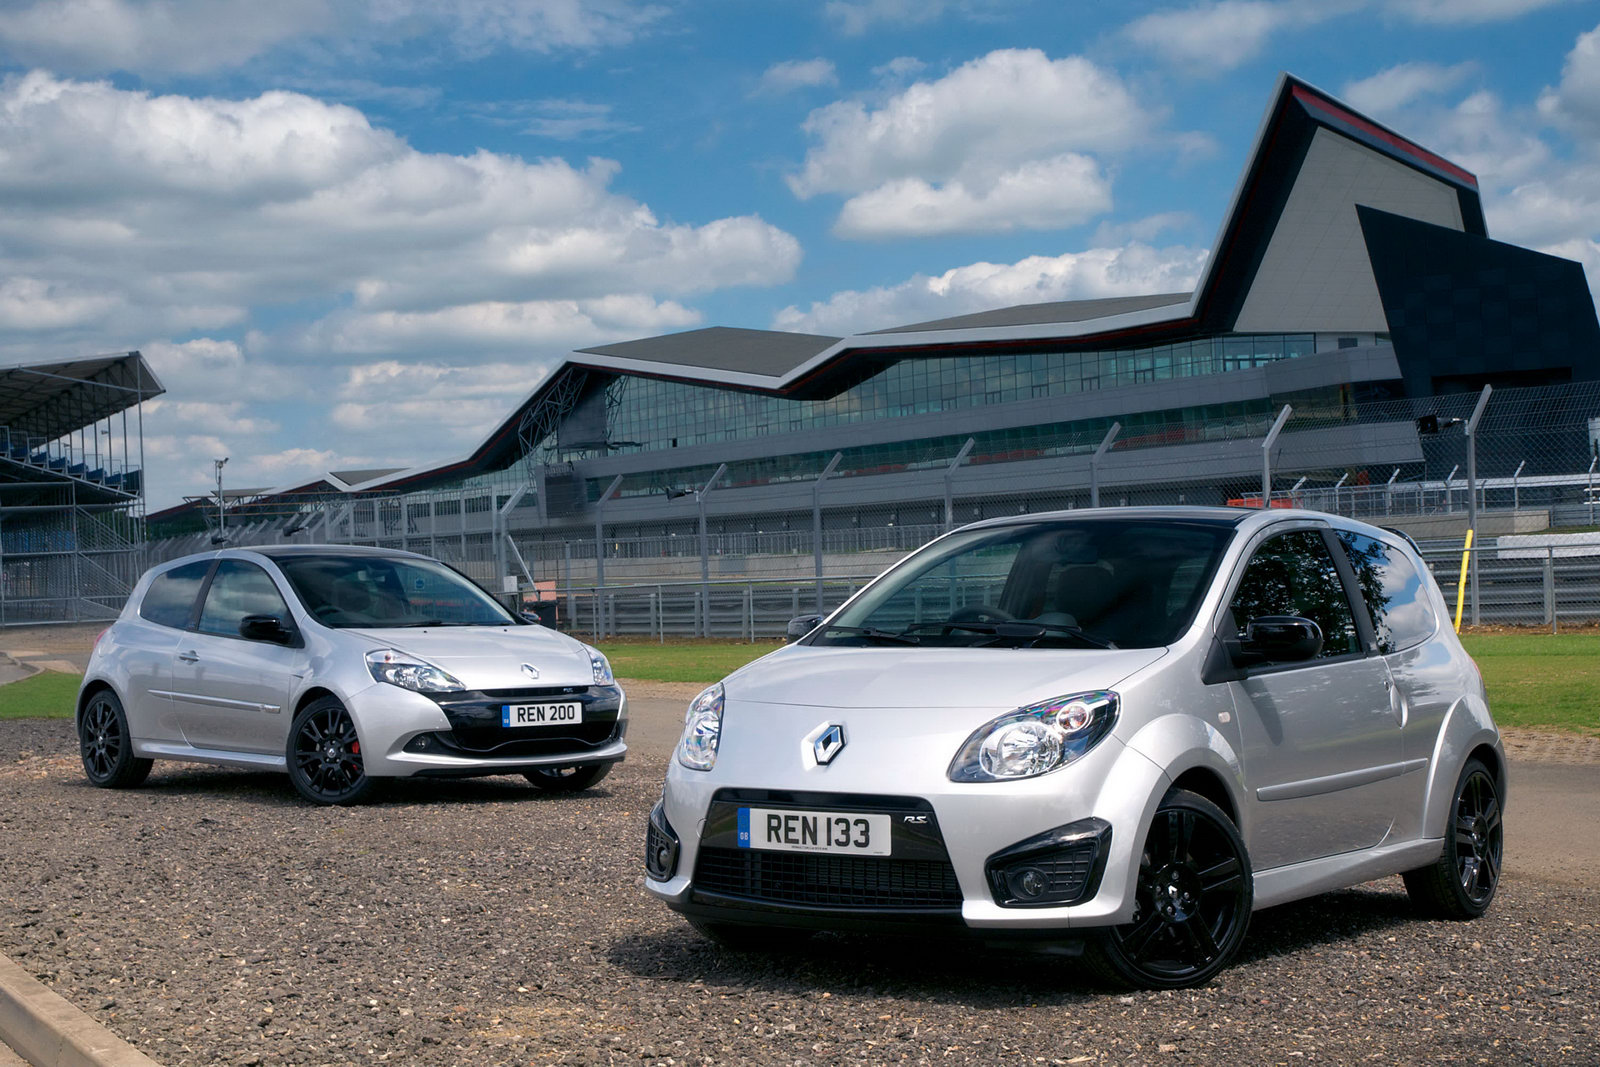 renault twingo rs 133 and clio rs 200 renault photo. Black Bedroom Furniture Sets. Home Design Ideas